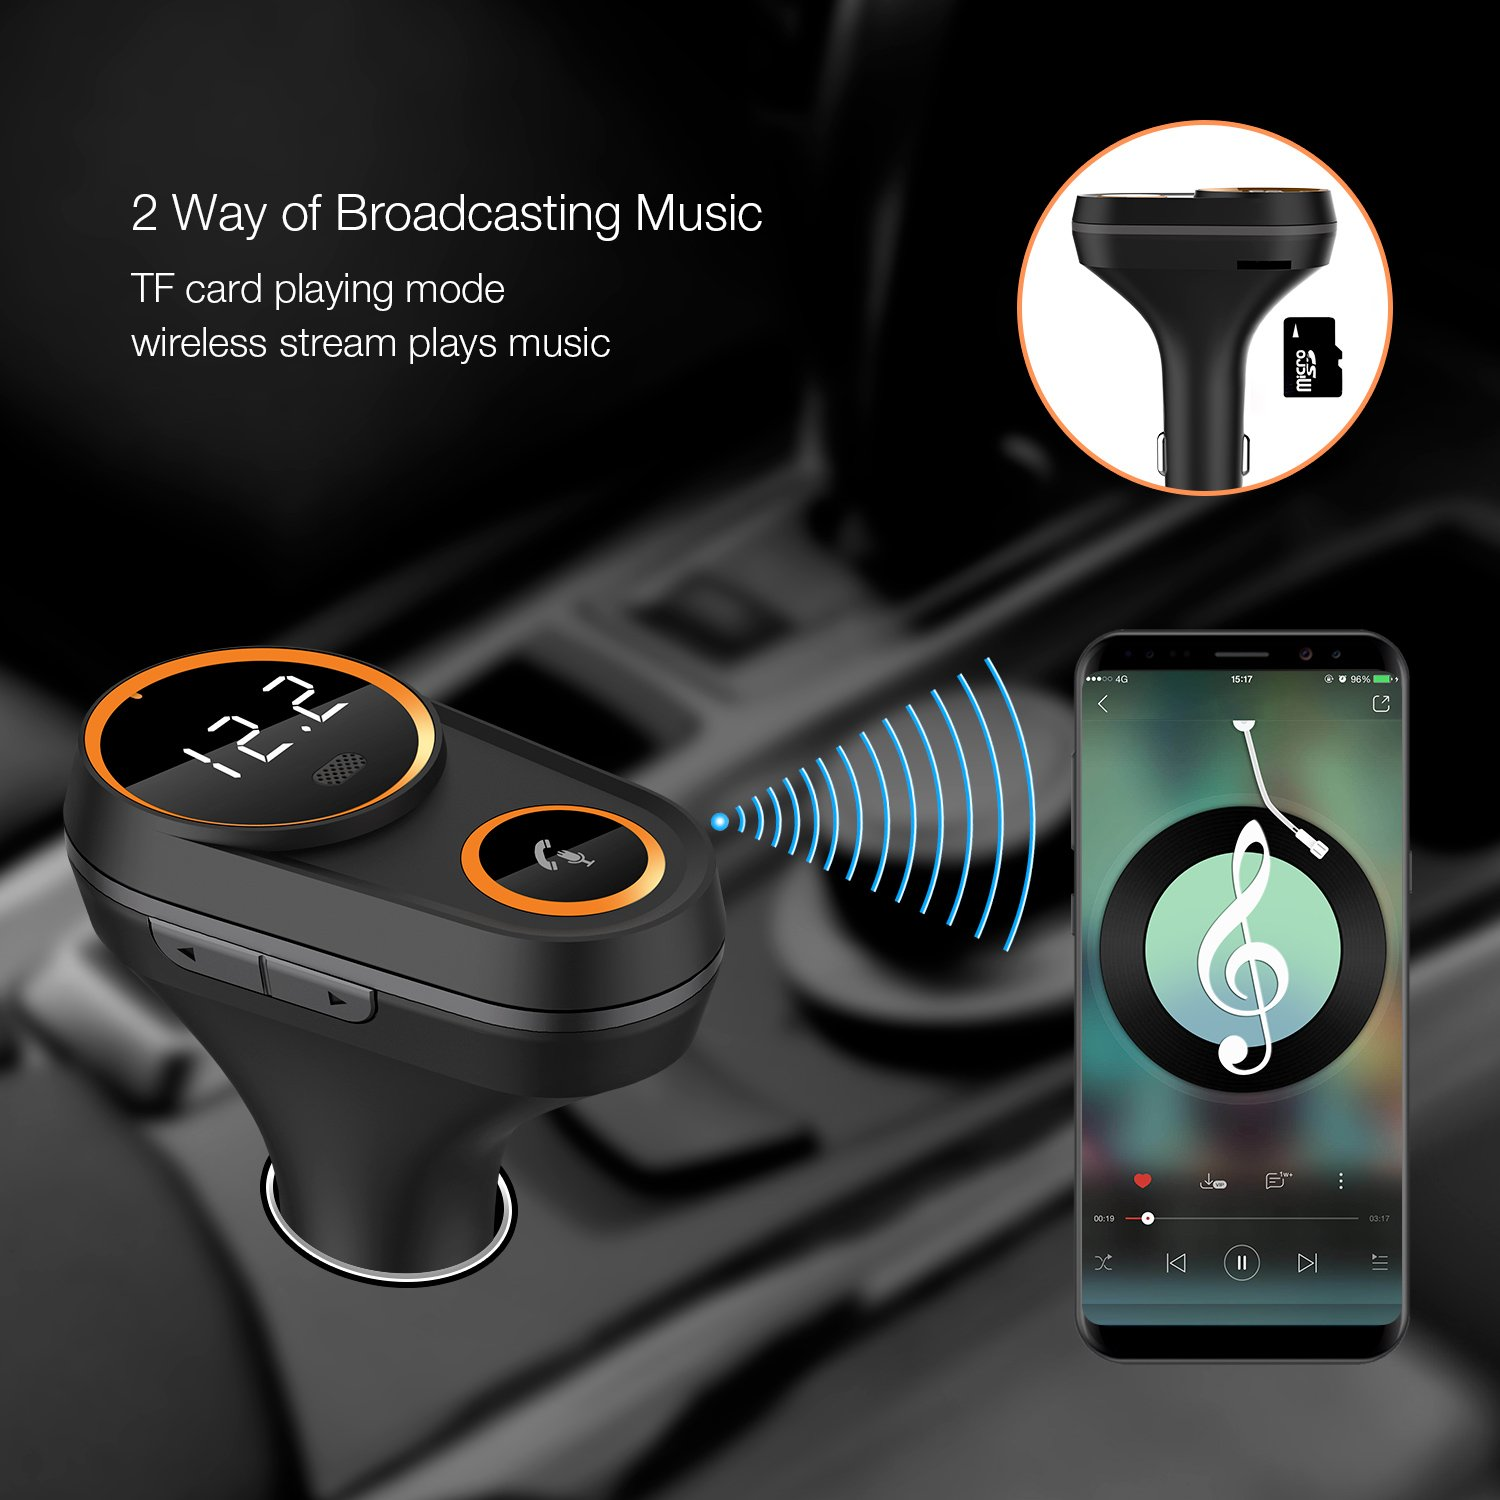 FM Transmitter, Frienda Wireless In-Car FM Radio Adapter 5 V/4.8 A Dual USB Ports Car Charger for iPhone iPad Samsung Android Phones, Hands-free Calling, MP3 Player, Support for Bluetooth by Frienda (Image #4)